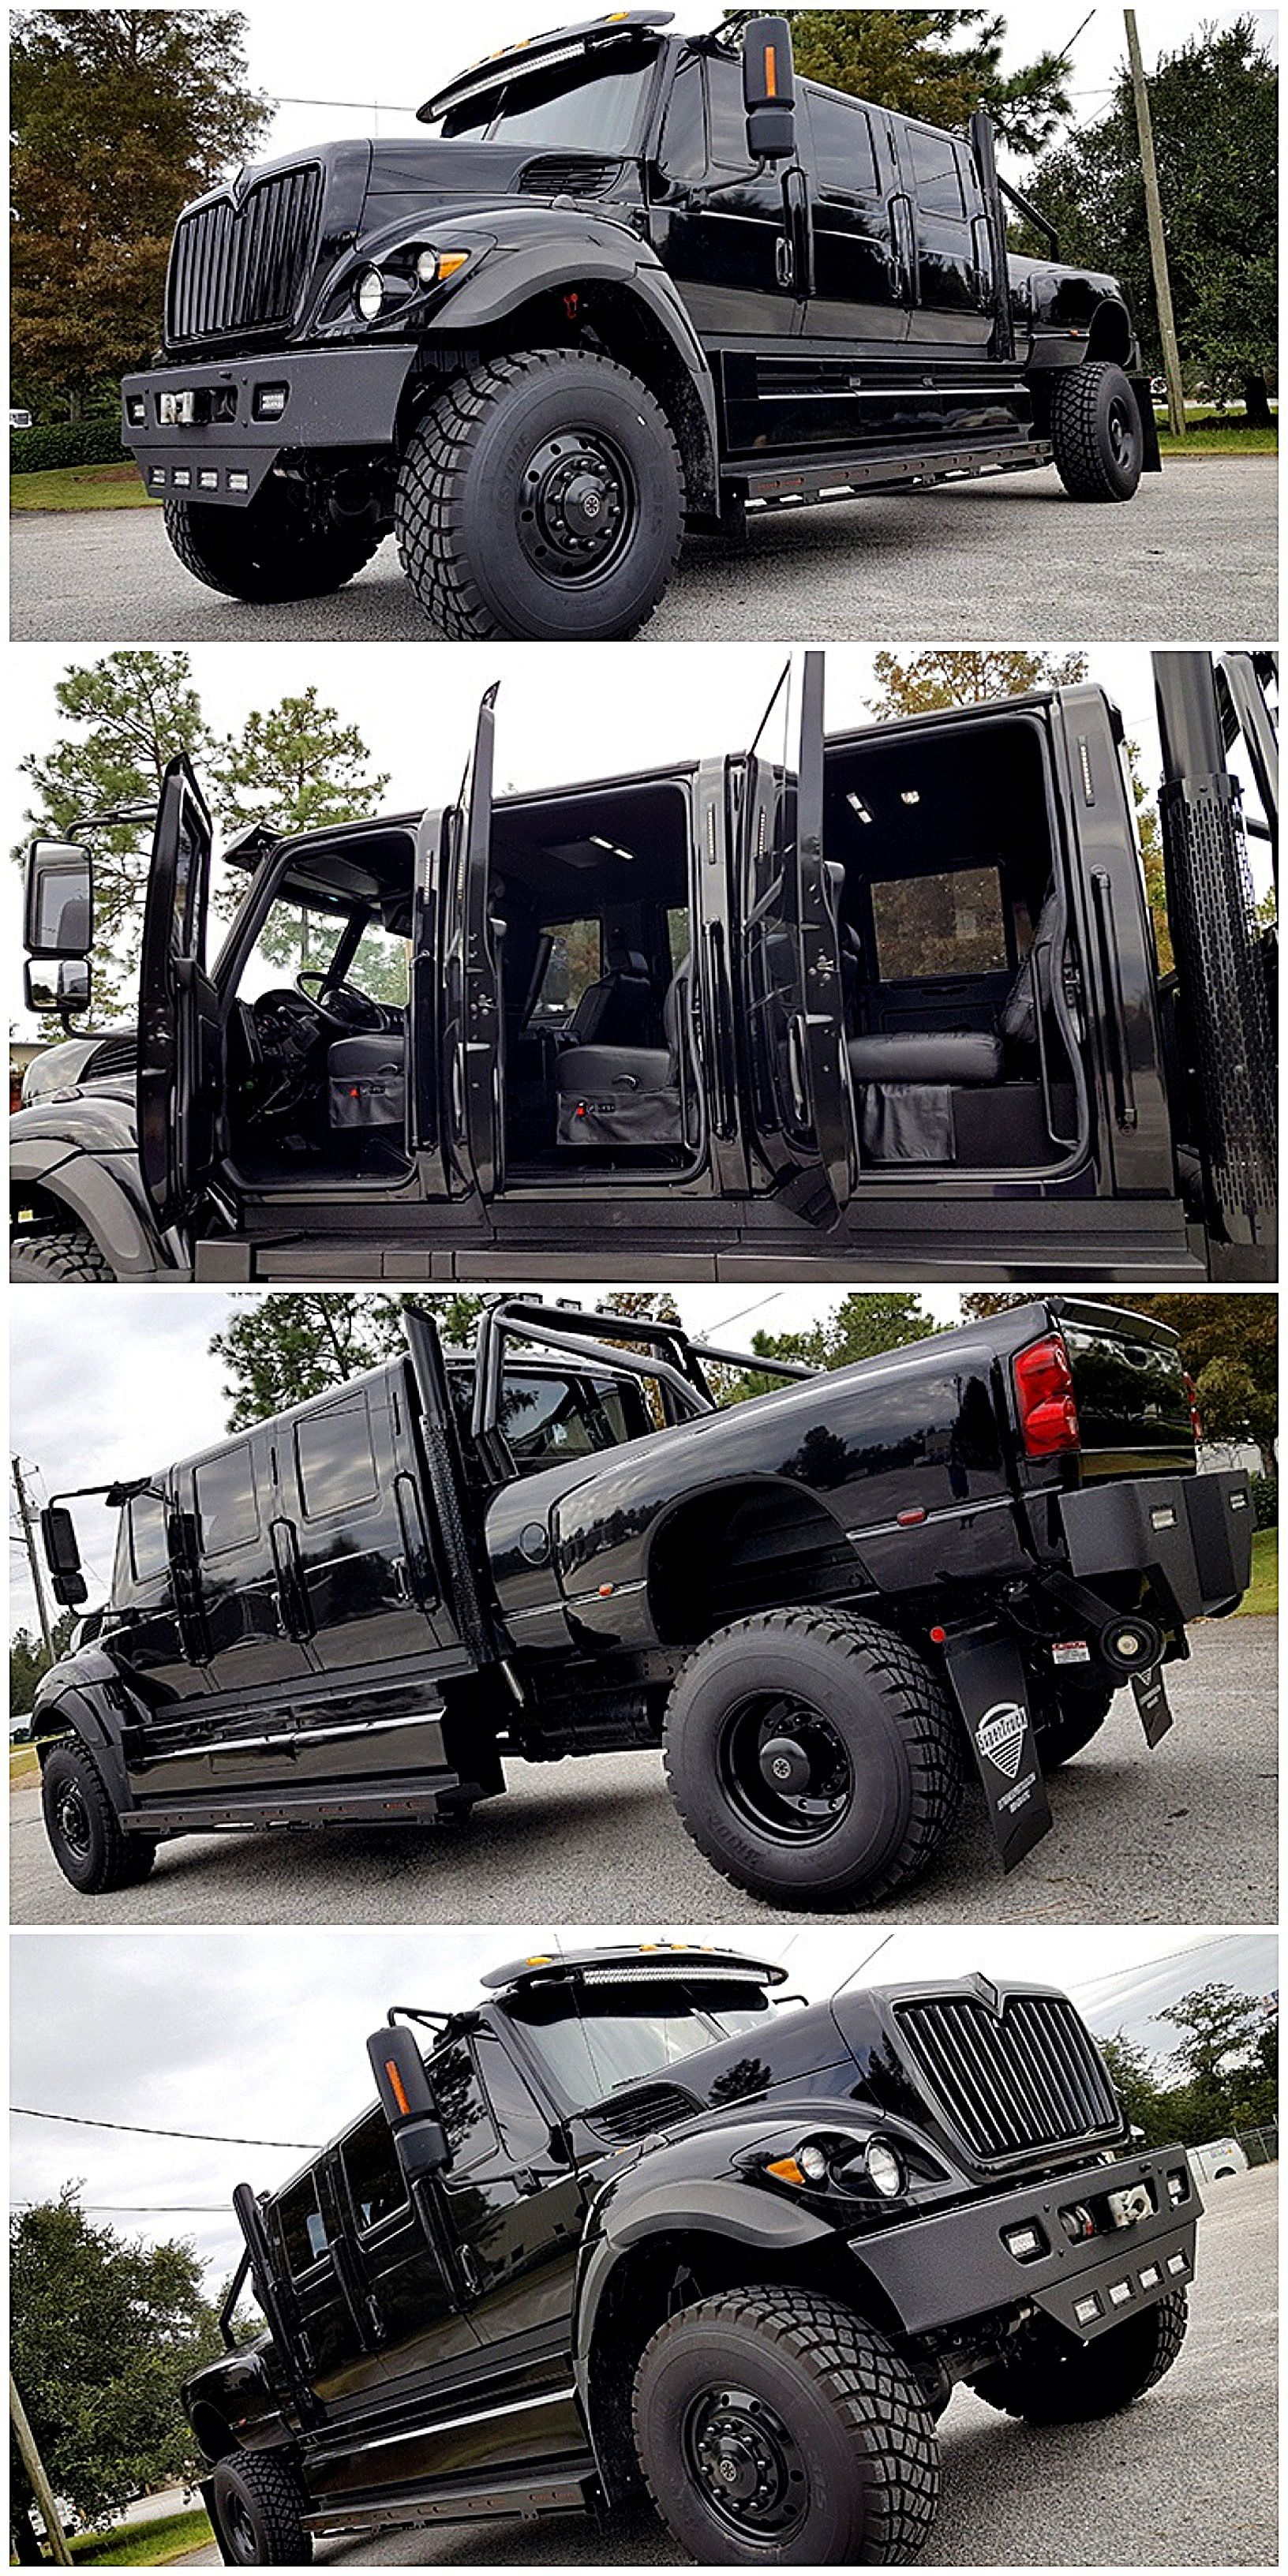 6 Door Truck : truck, Knight, Armor(FORD)F650., SuperTruck, 6Door, Pickup, F650,, Trucks,, Trucks